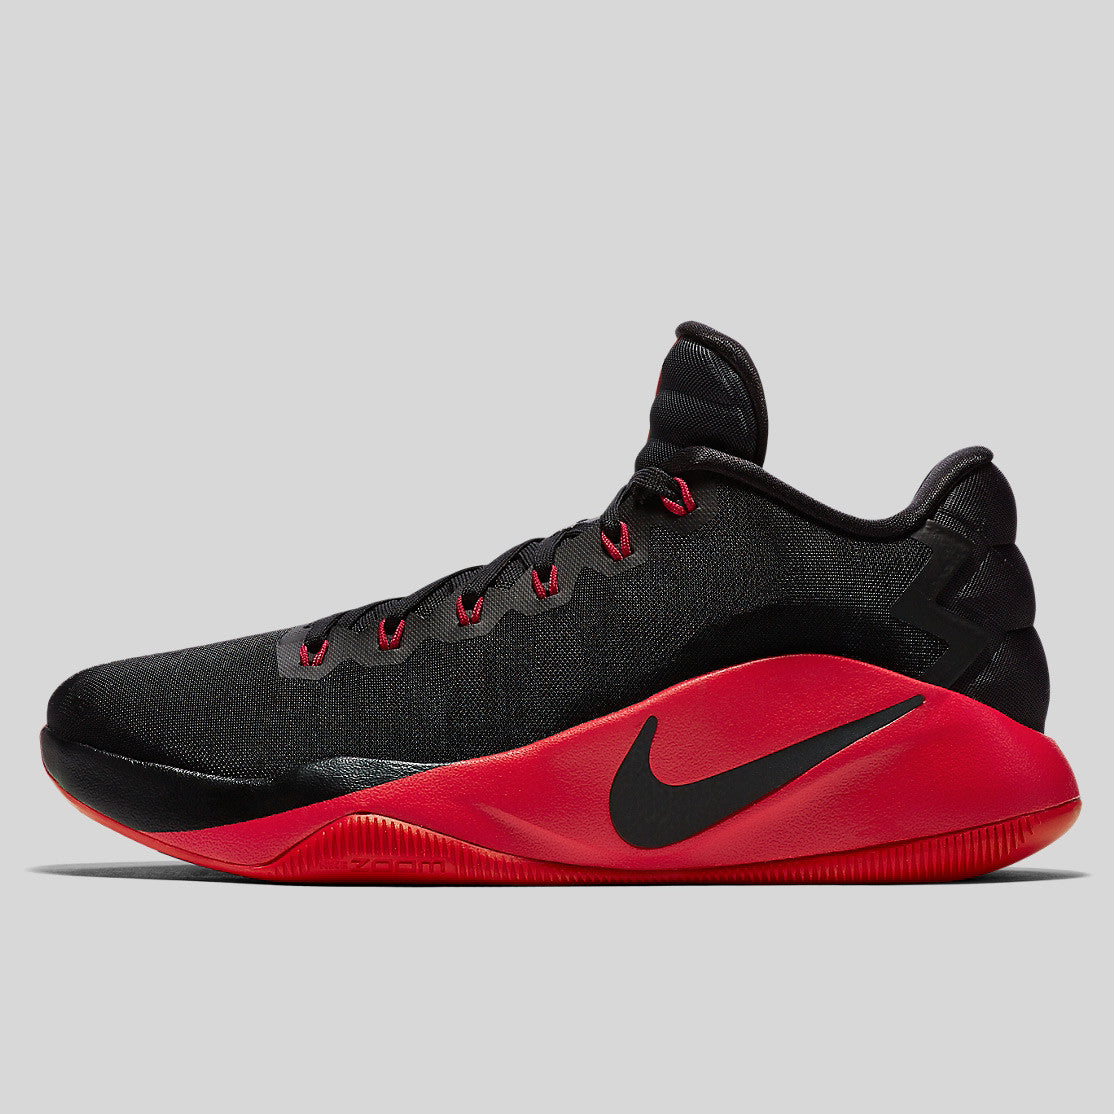 895eb9787a54 ... shop nike hyperdunk 2016 low ep black university red dark grey 844364  060 e439a 1fdb0